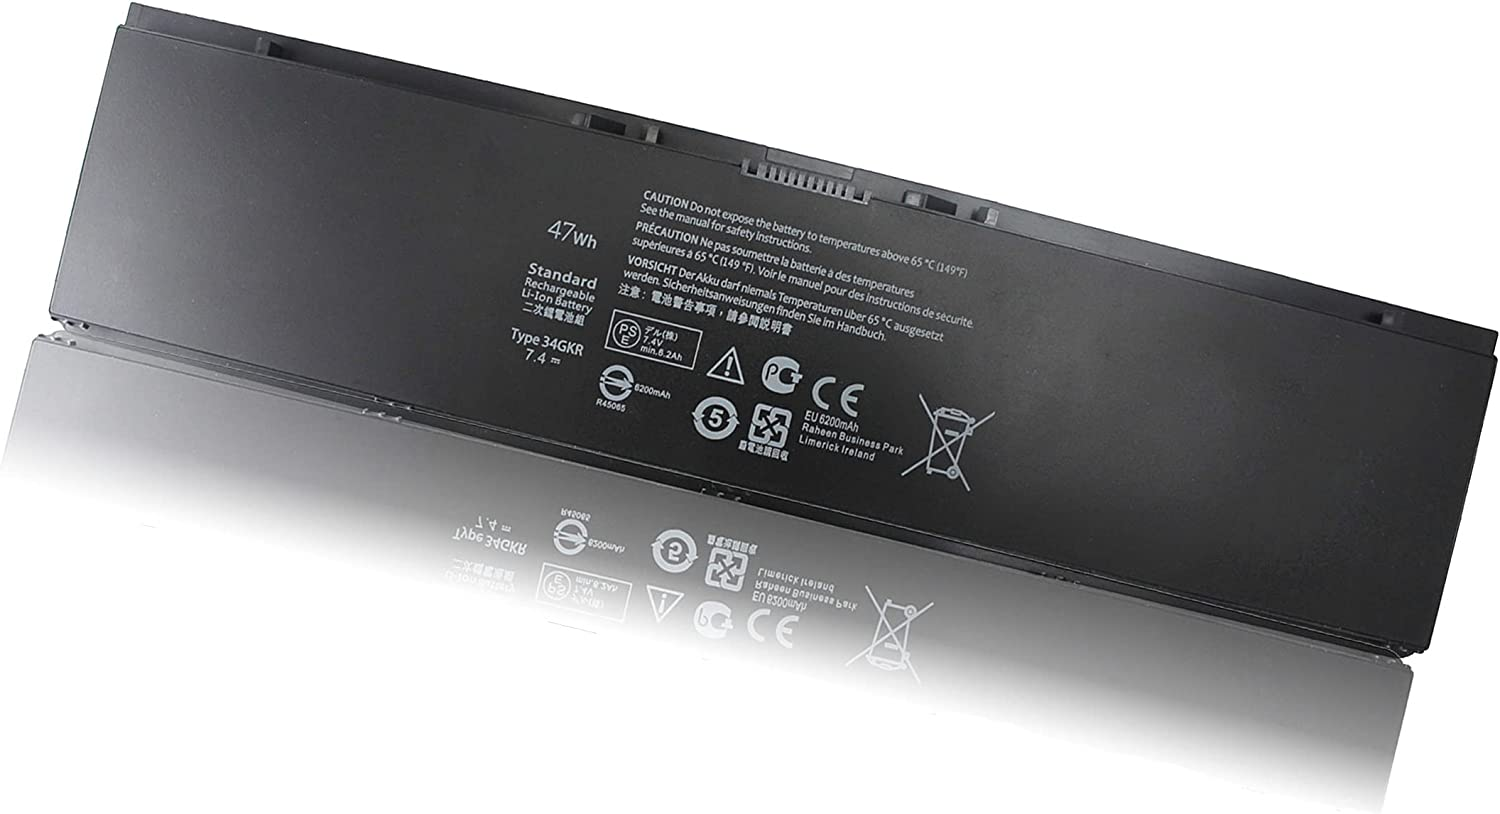 47WH E7440 34GKR New Battery Compatible with Dell Latitude 14 7000 E7450 E7420 Series PFXCR 0G95J5 F38HT V8XN3 909H5 G95J5 0909H5 T19VW 5K1GW 3RNFD 451-BBFT 451-BBFV - 12 Months Warranty